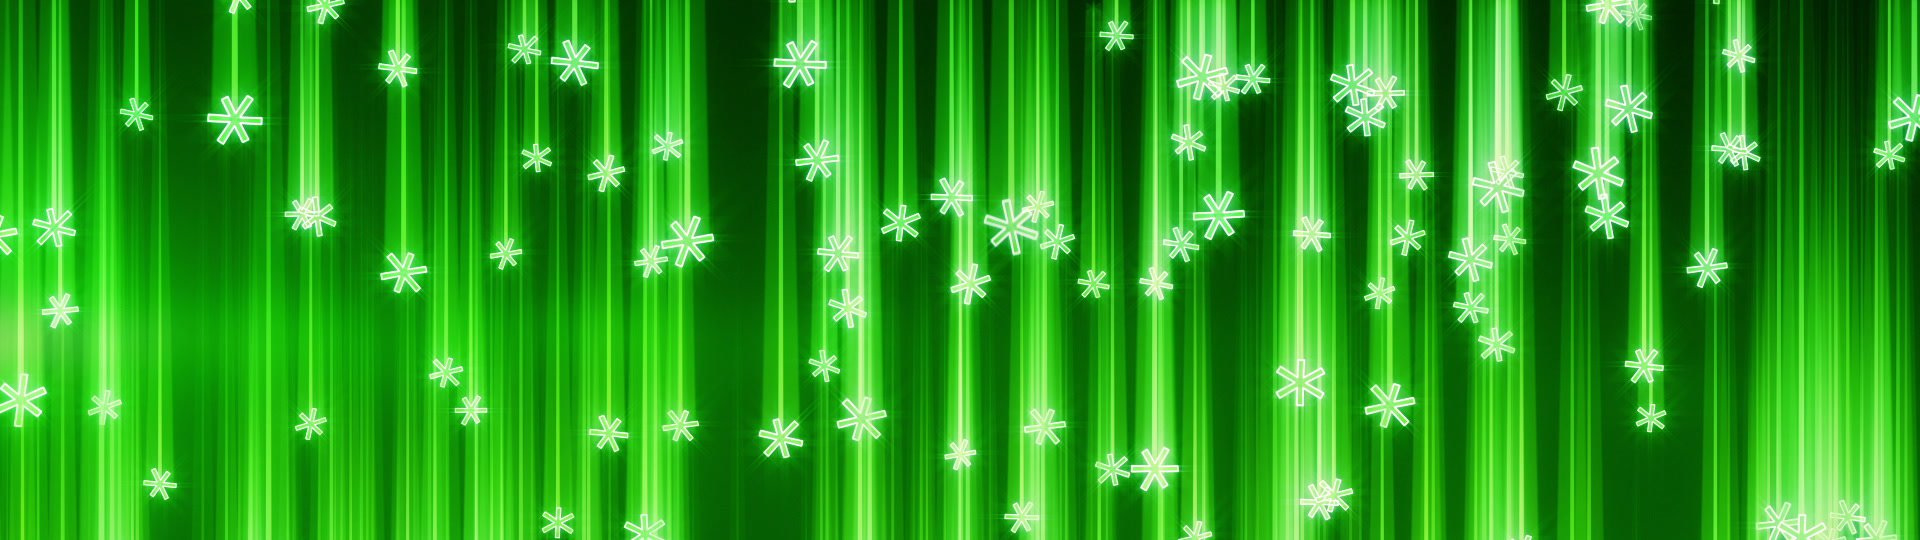 Techno green snowfall seamless loop | techno green snowfall. computer generated seamless loop abstract motion background. HD 1080p  - ID:17259